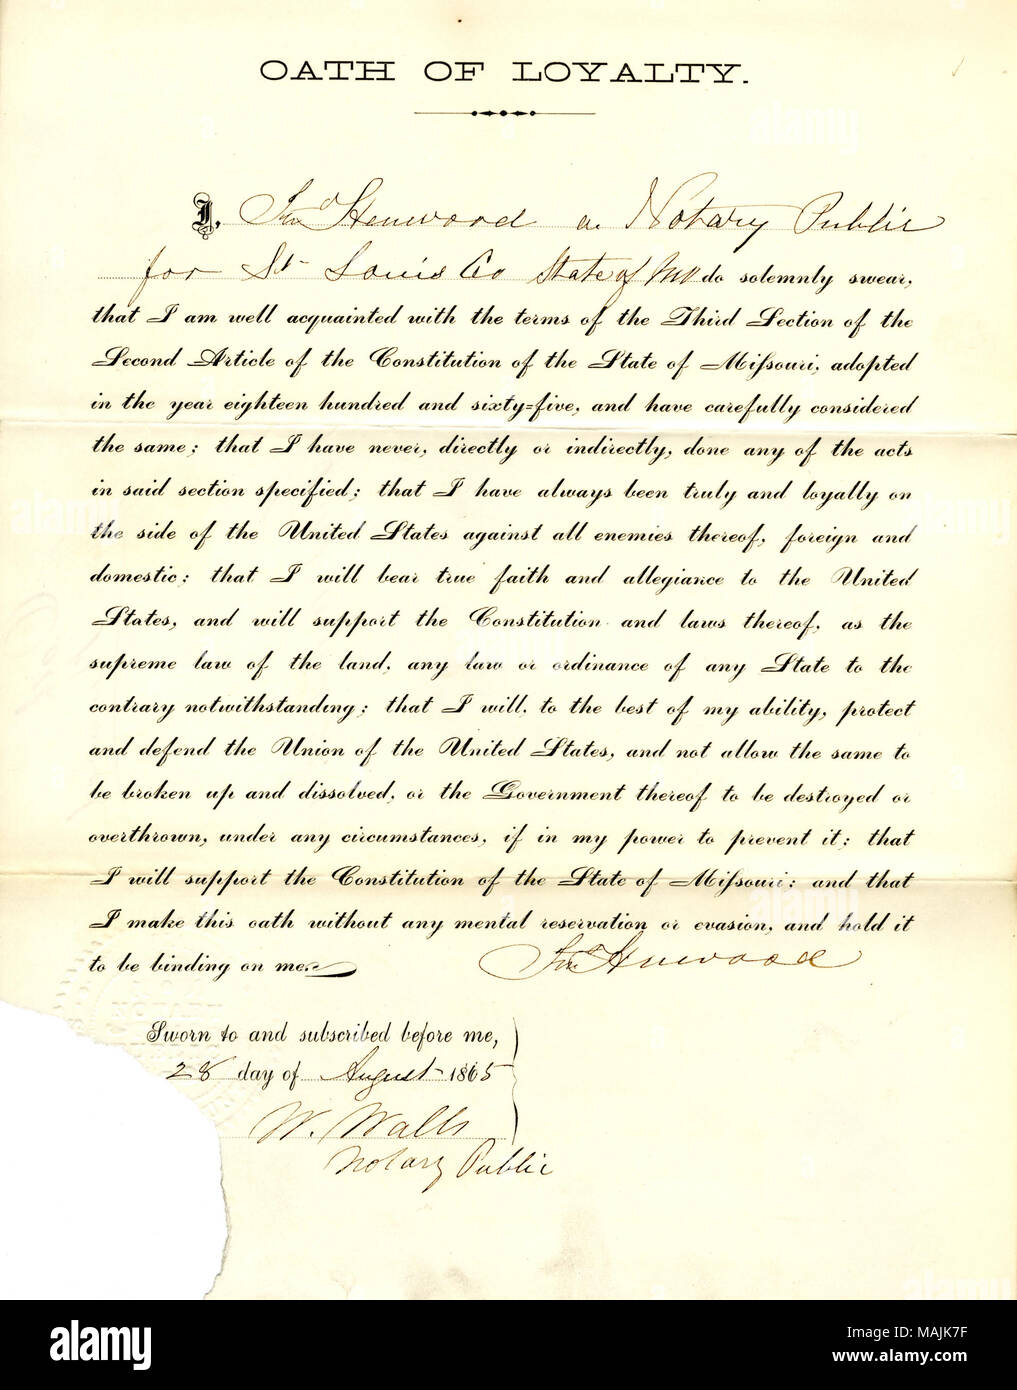 Swears oath of allegiance to the Government of the United States and the State of Missouri. Title: Loyalty oath of Jno. Henwood of Missouri, County of St. Louis  . 28 August 1865. Henwood, J. Stock Photo